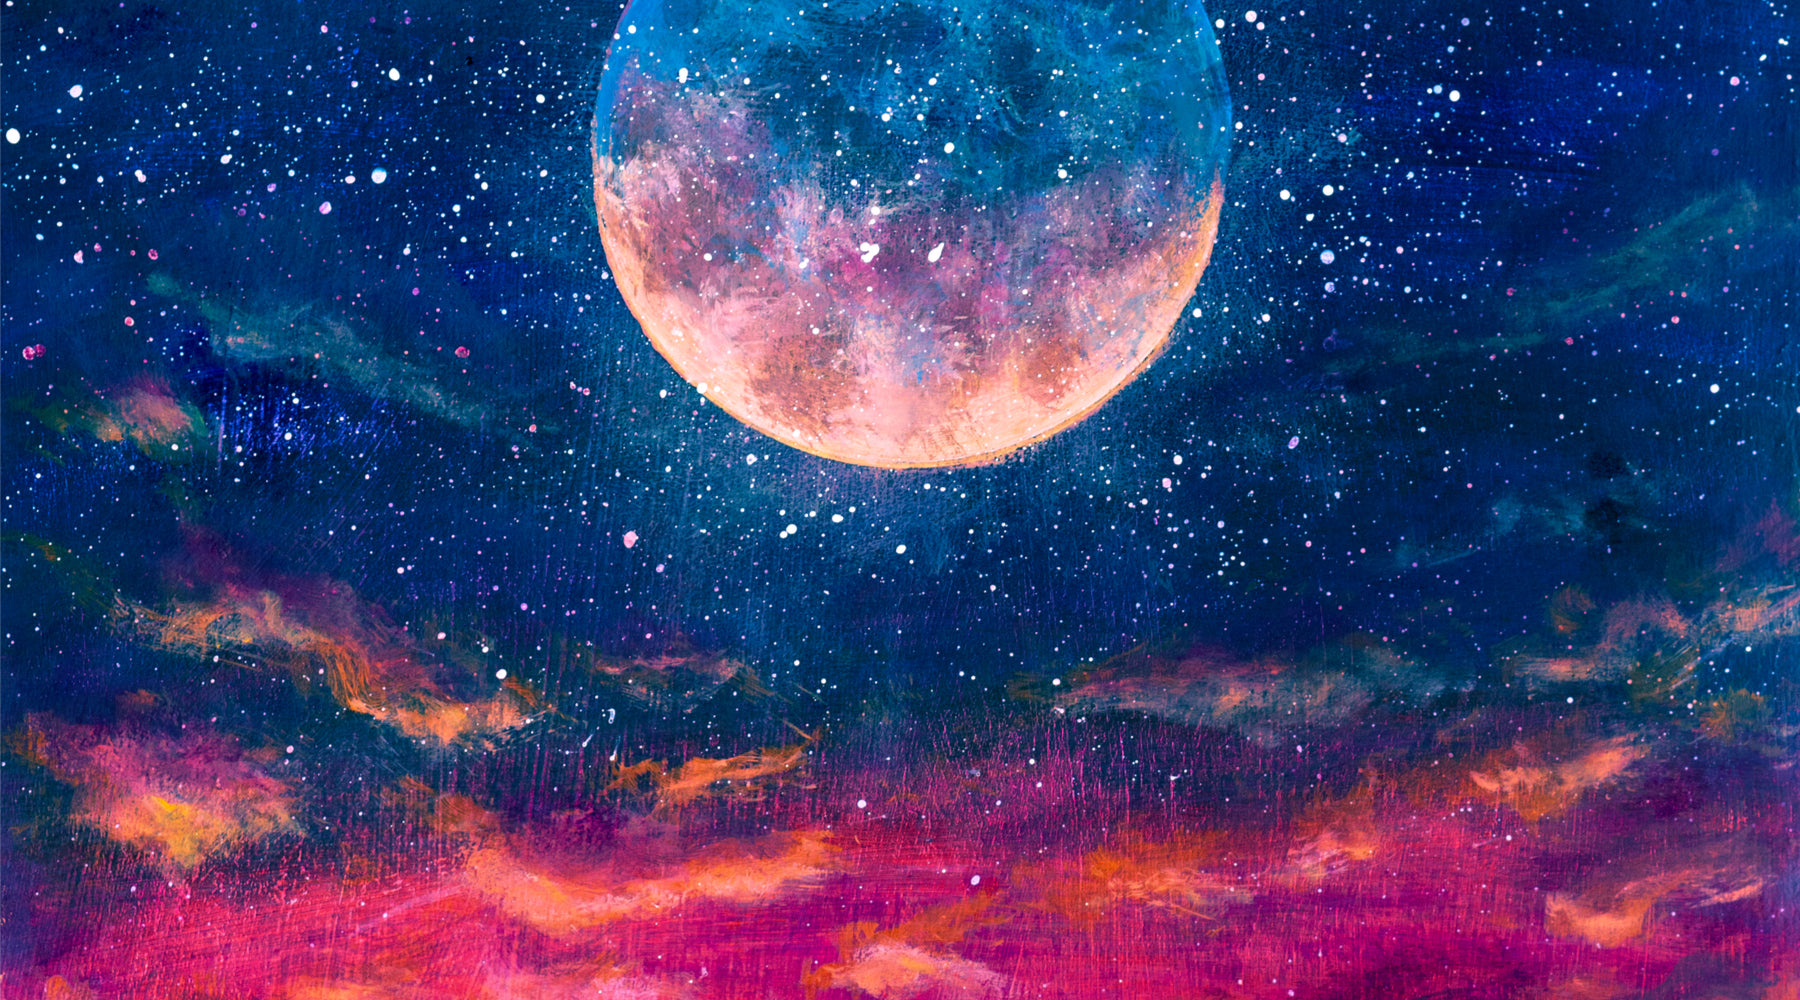 Painting of moon in night sky.